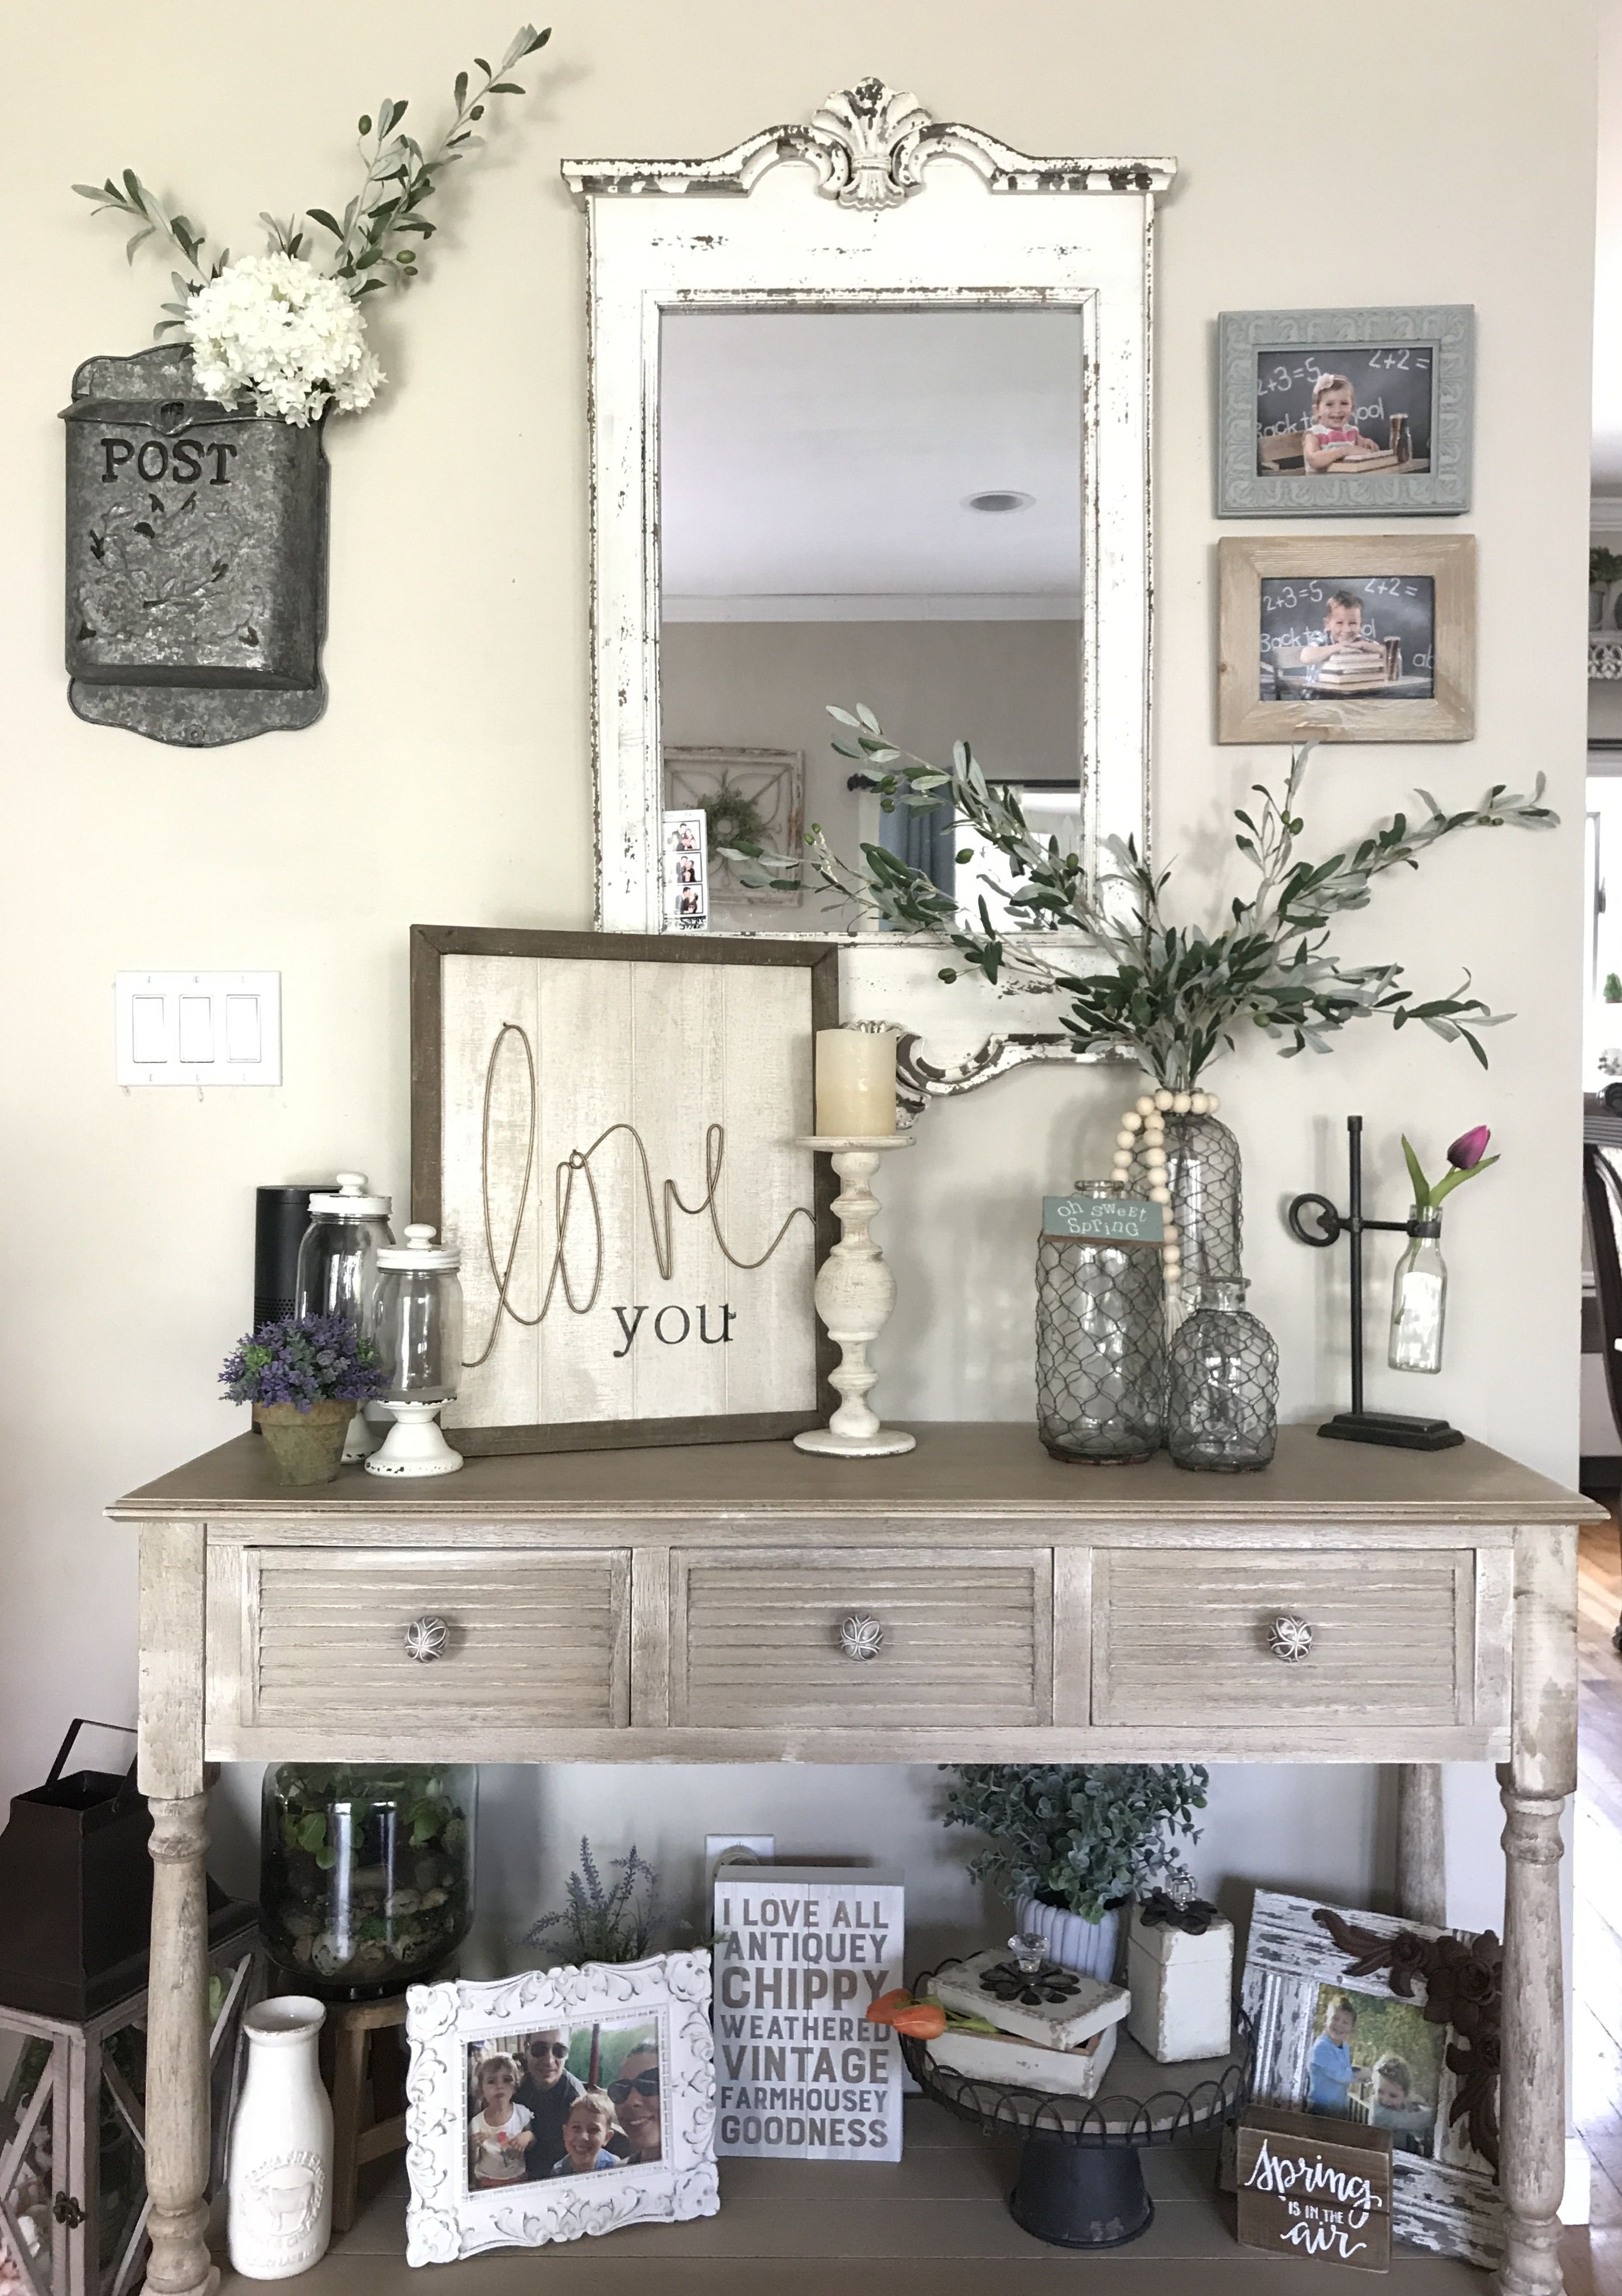 Rustic Decor And Console Table Decorated With Chicken Wire Vases Olive Stems Chalk Farmhouse Decor Living Room Country Style Dining Room Country House Decor